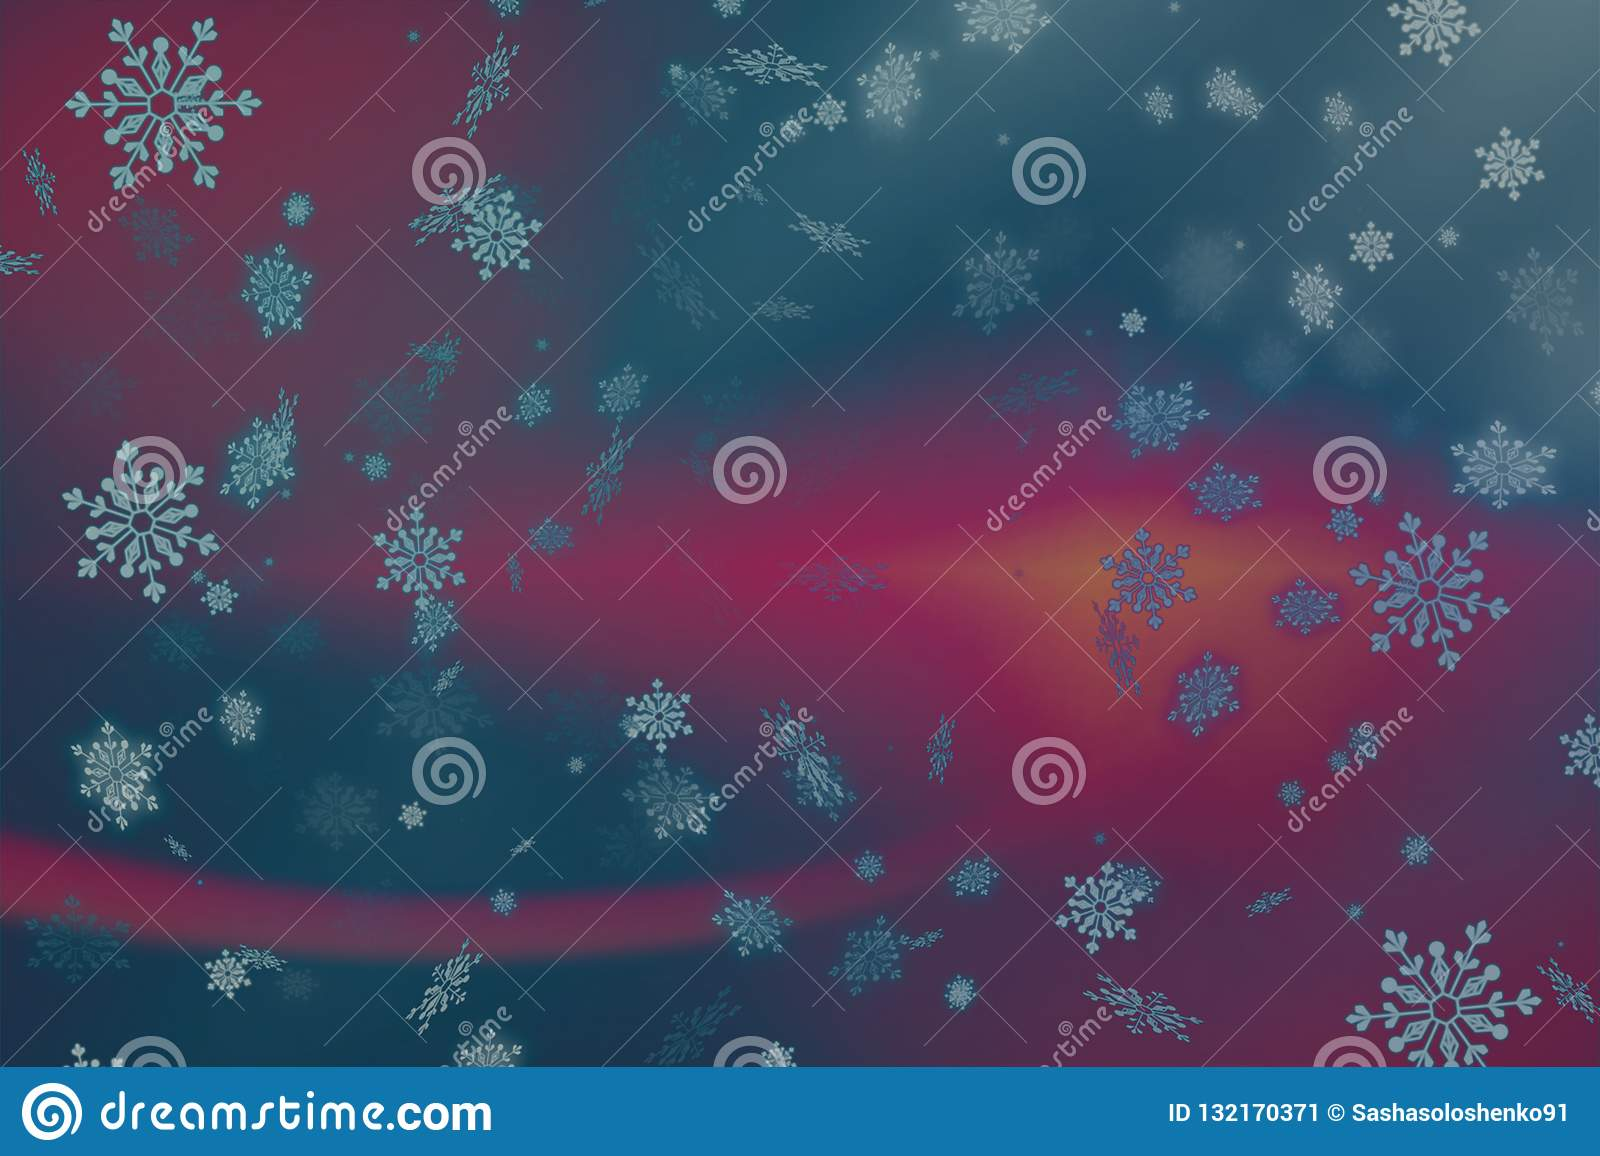 Abstract Pink and purple Christmas background with snow and snowflakes.